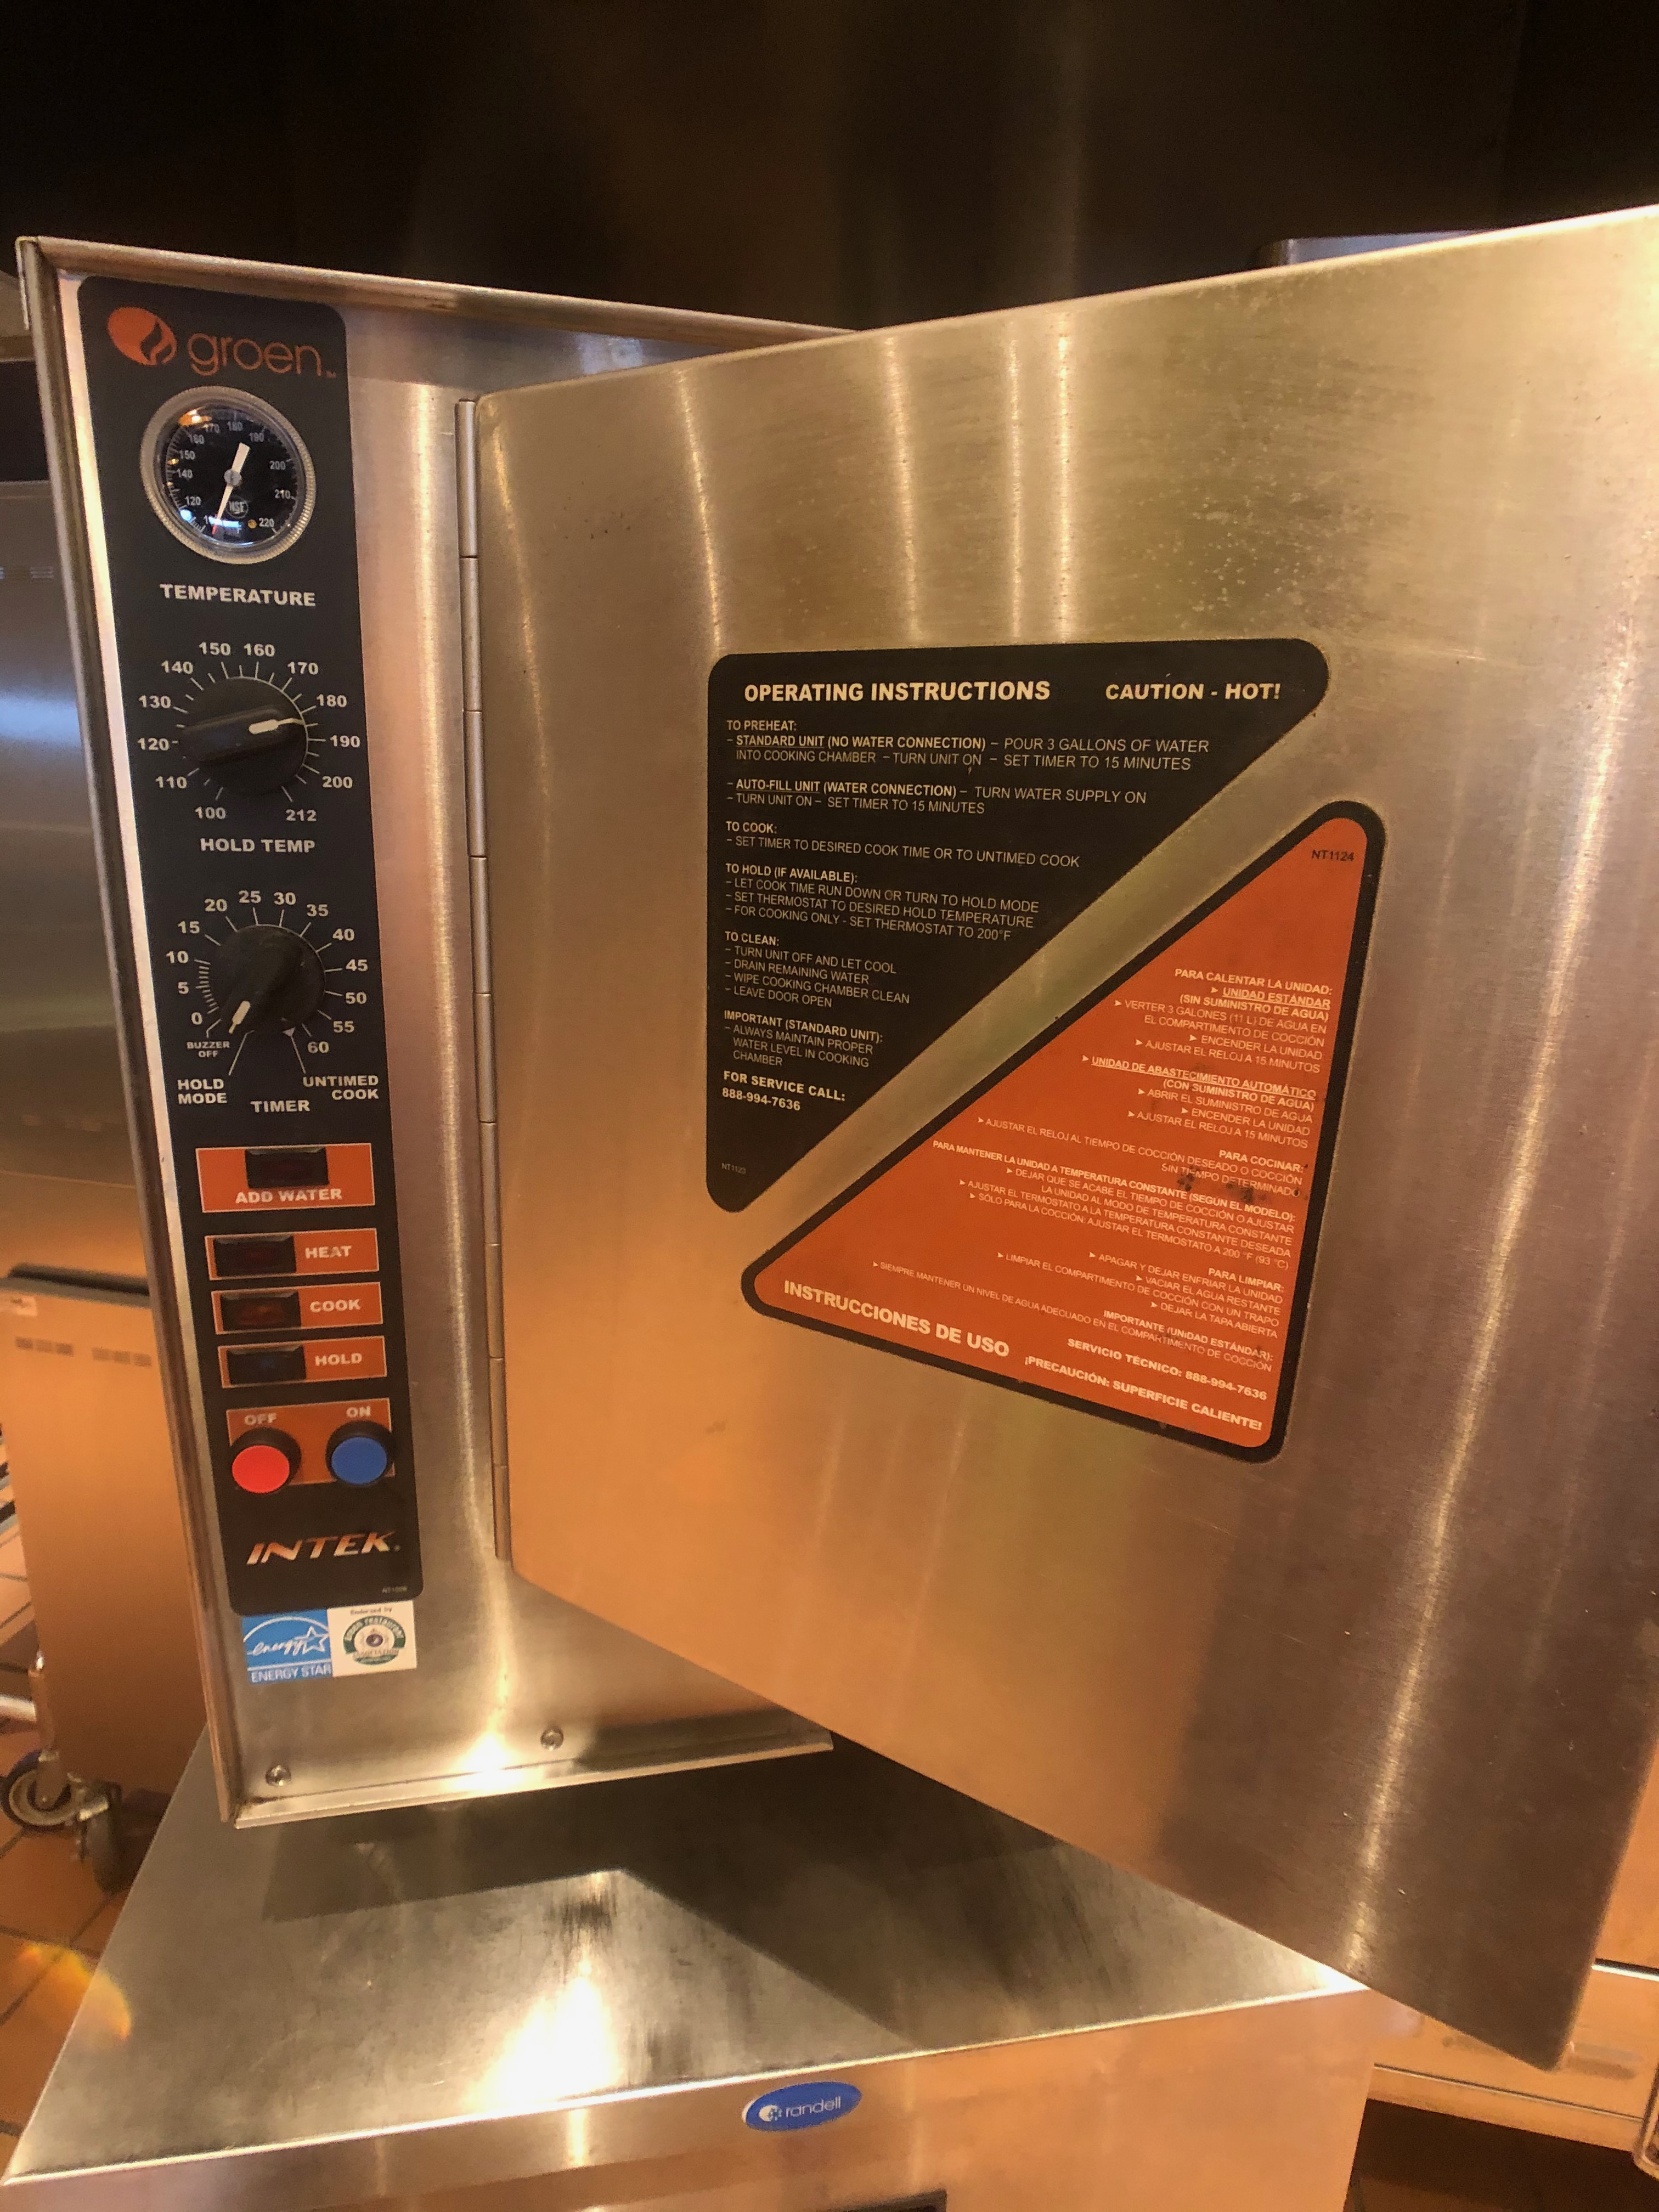 """Groen (6) Pan Countertop Convection Steamer, Model XS-208-12-3, S/N J1023935-1, Holds (6) 12"""" x - Image 3 of 7"""